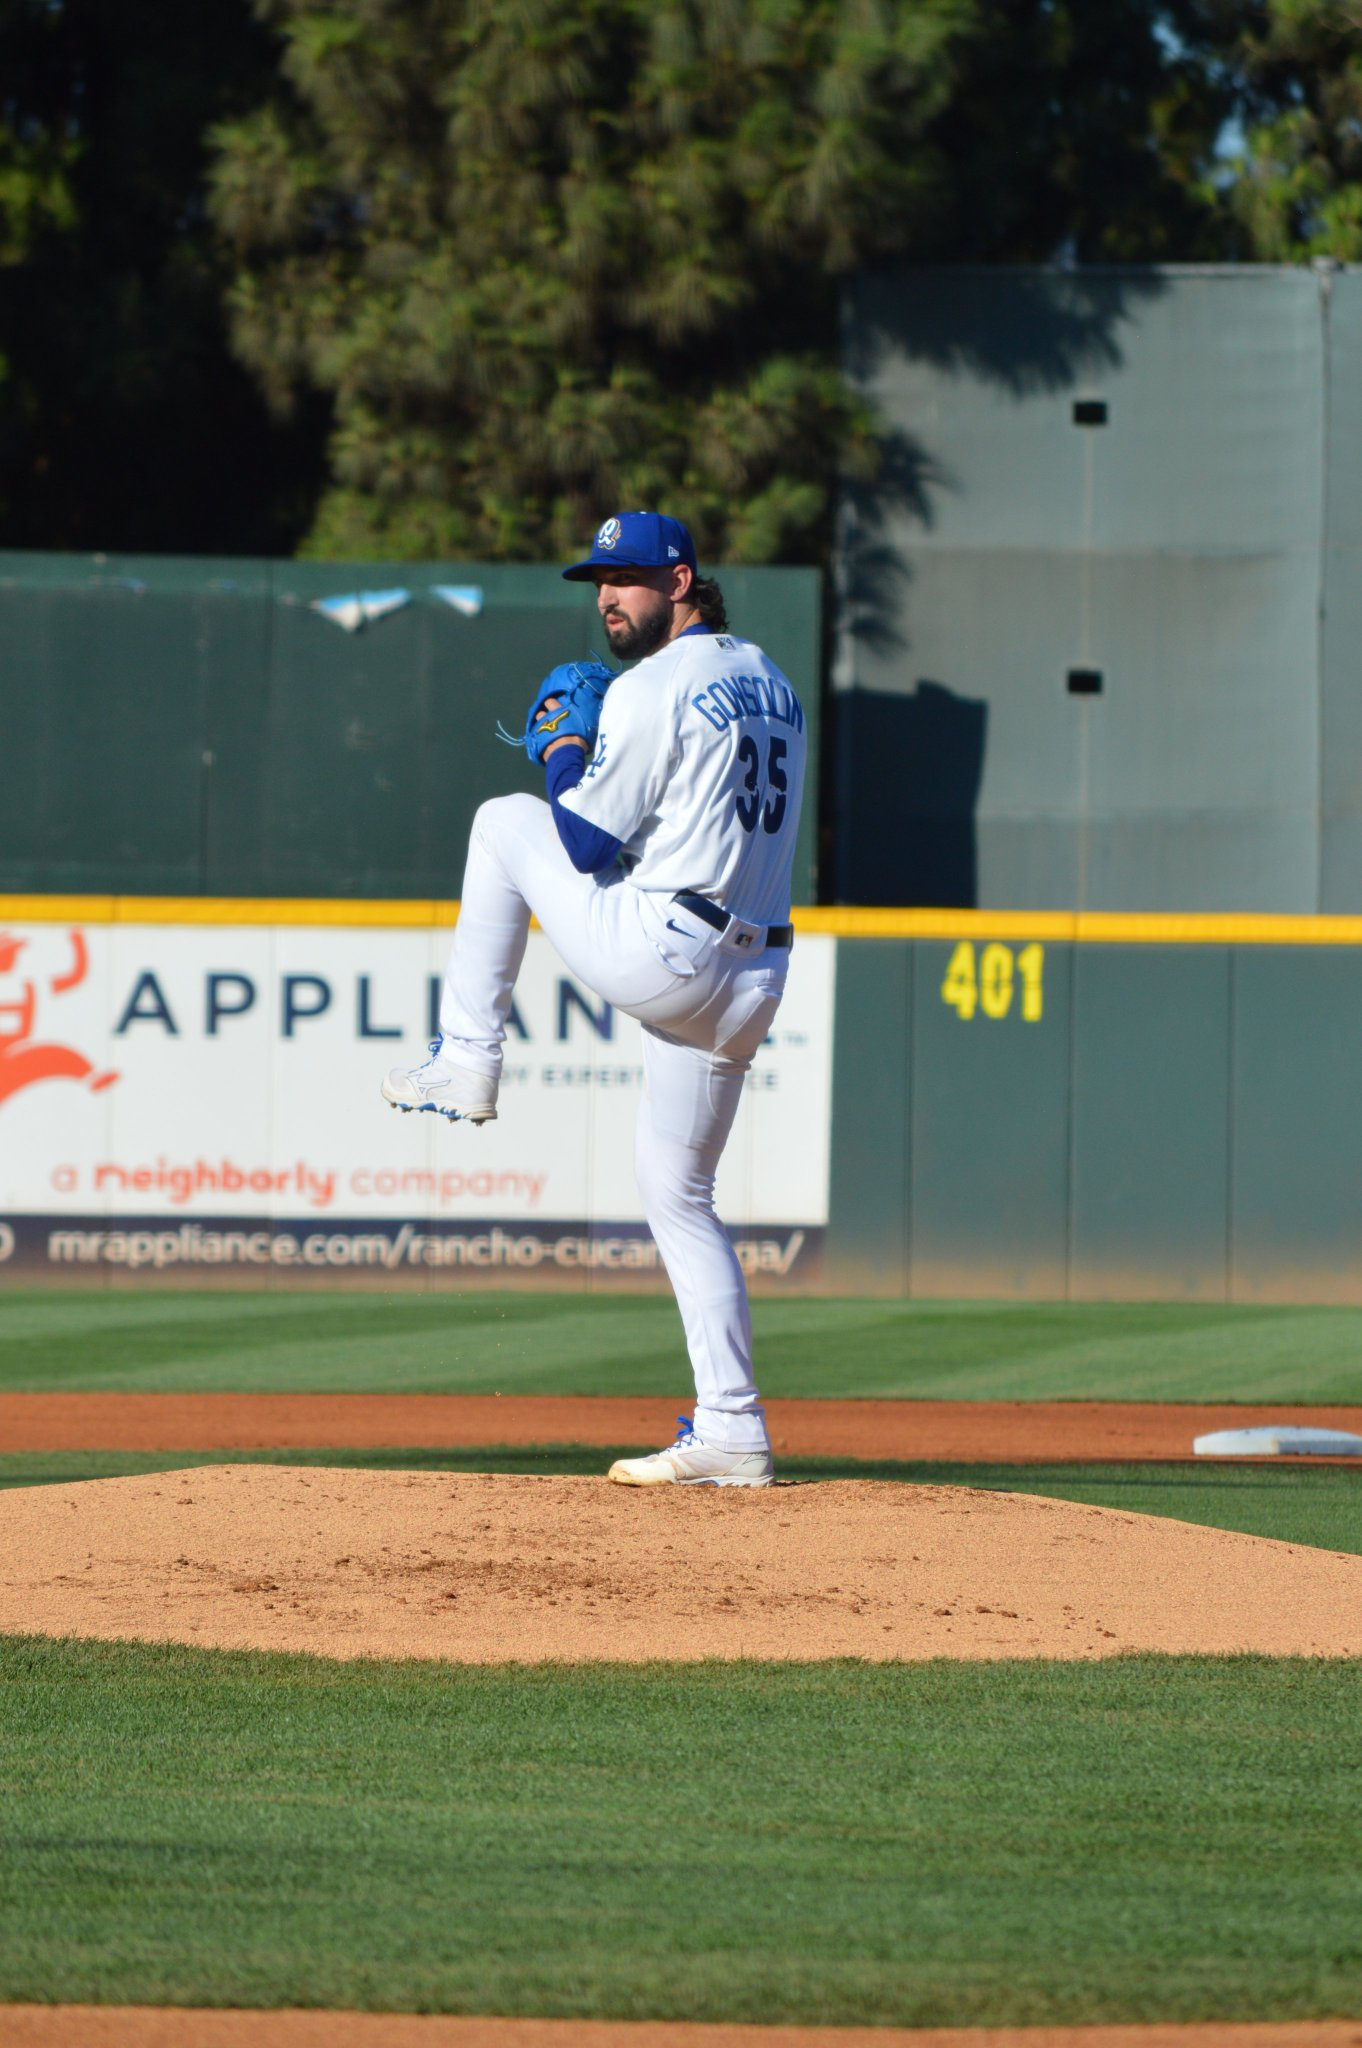 Dodgers right-hander Tony Gonsolin pitches on a minor league rehab assignment with Low-A Rancho Cucamonga on Saturday, September 4, 2021.